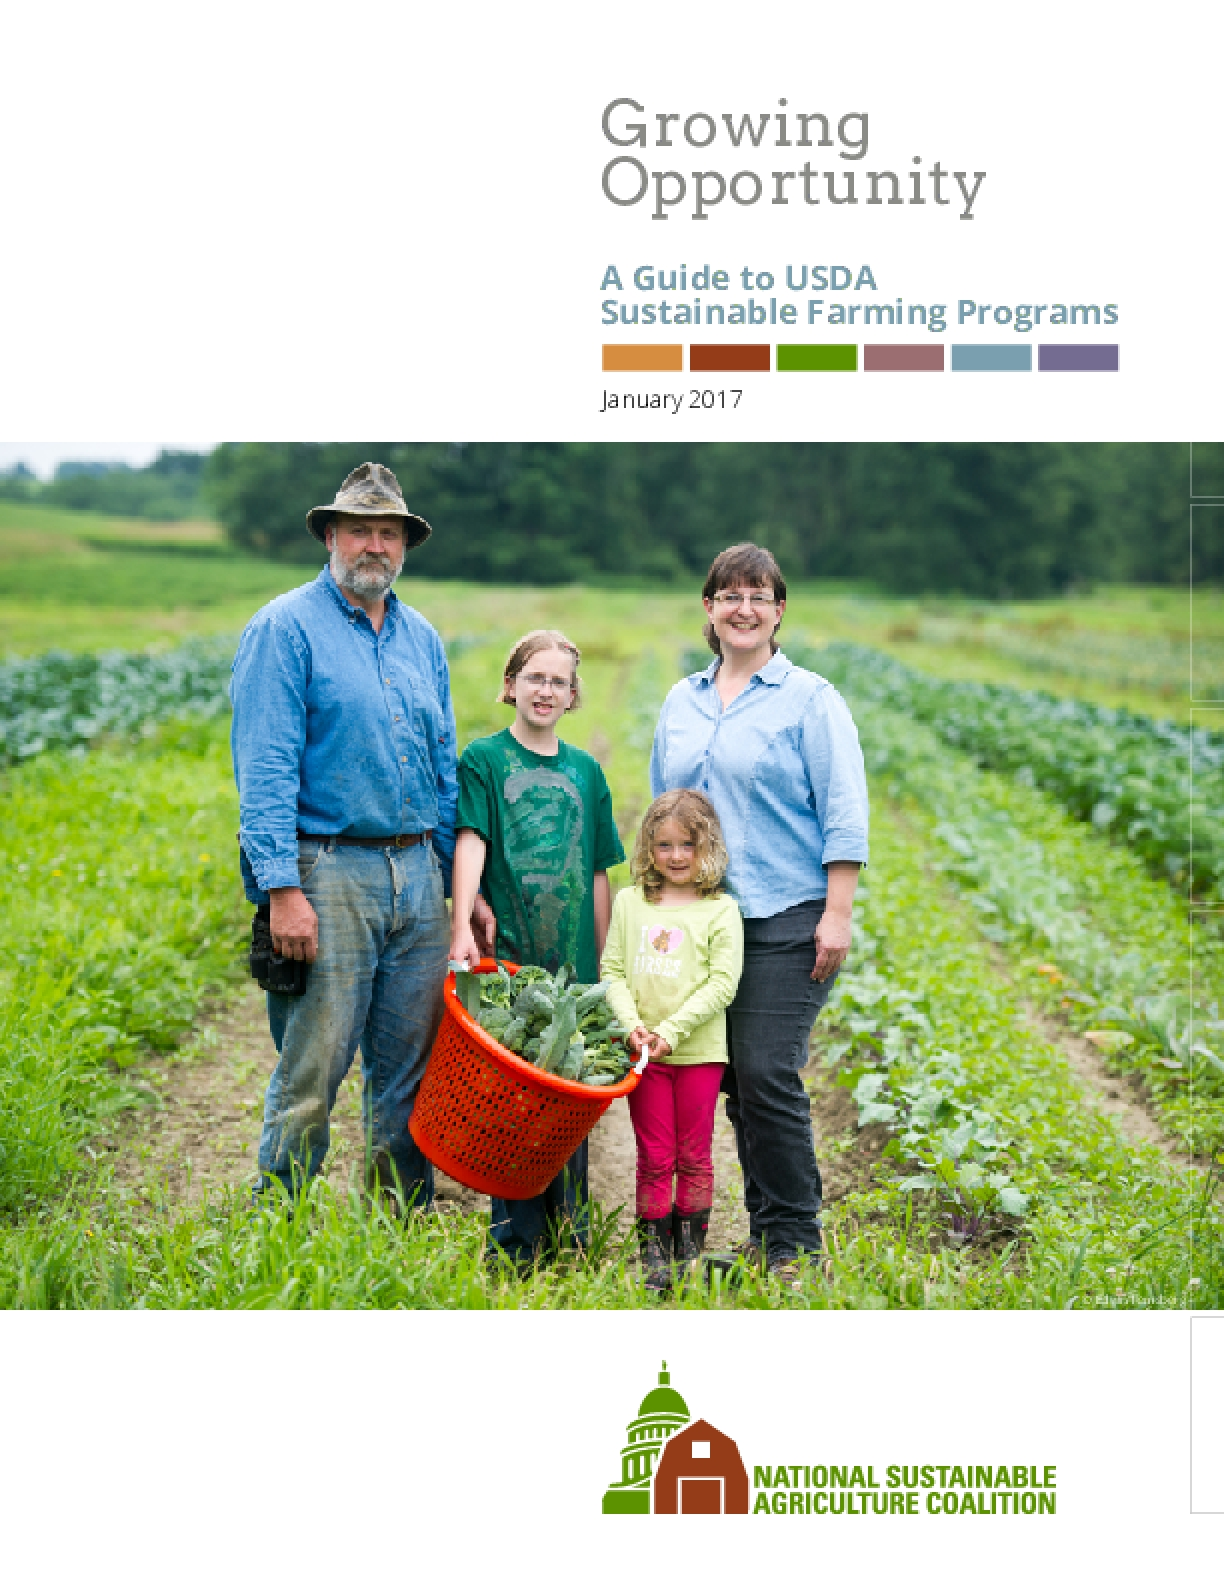 Growing Opportunity: A Guide to USDA Sustainable Farming Programs